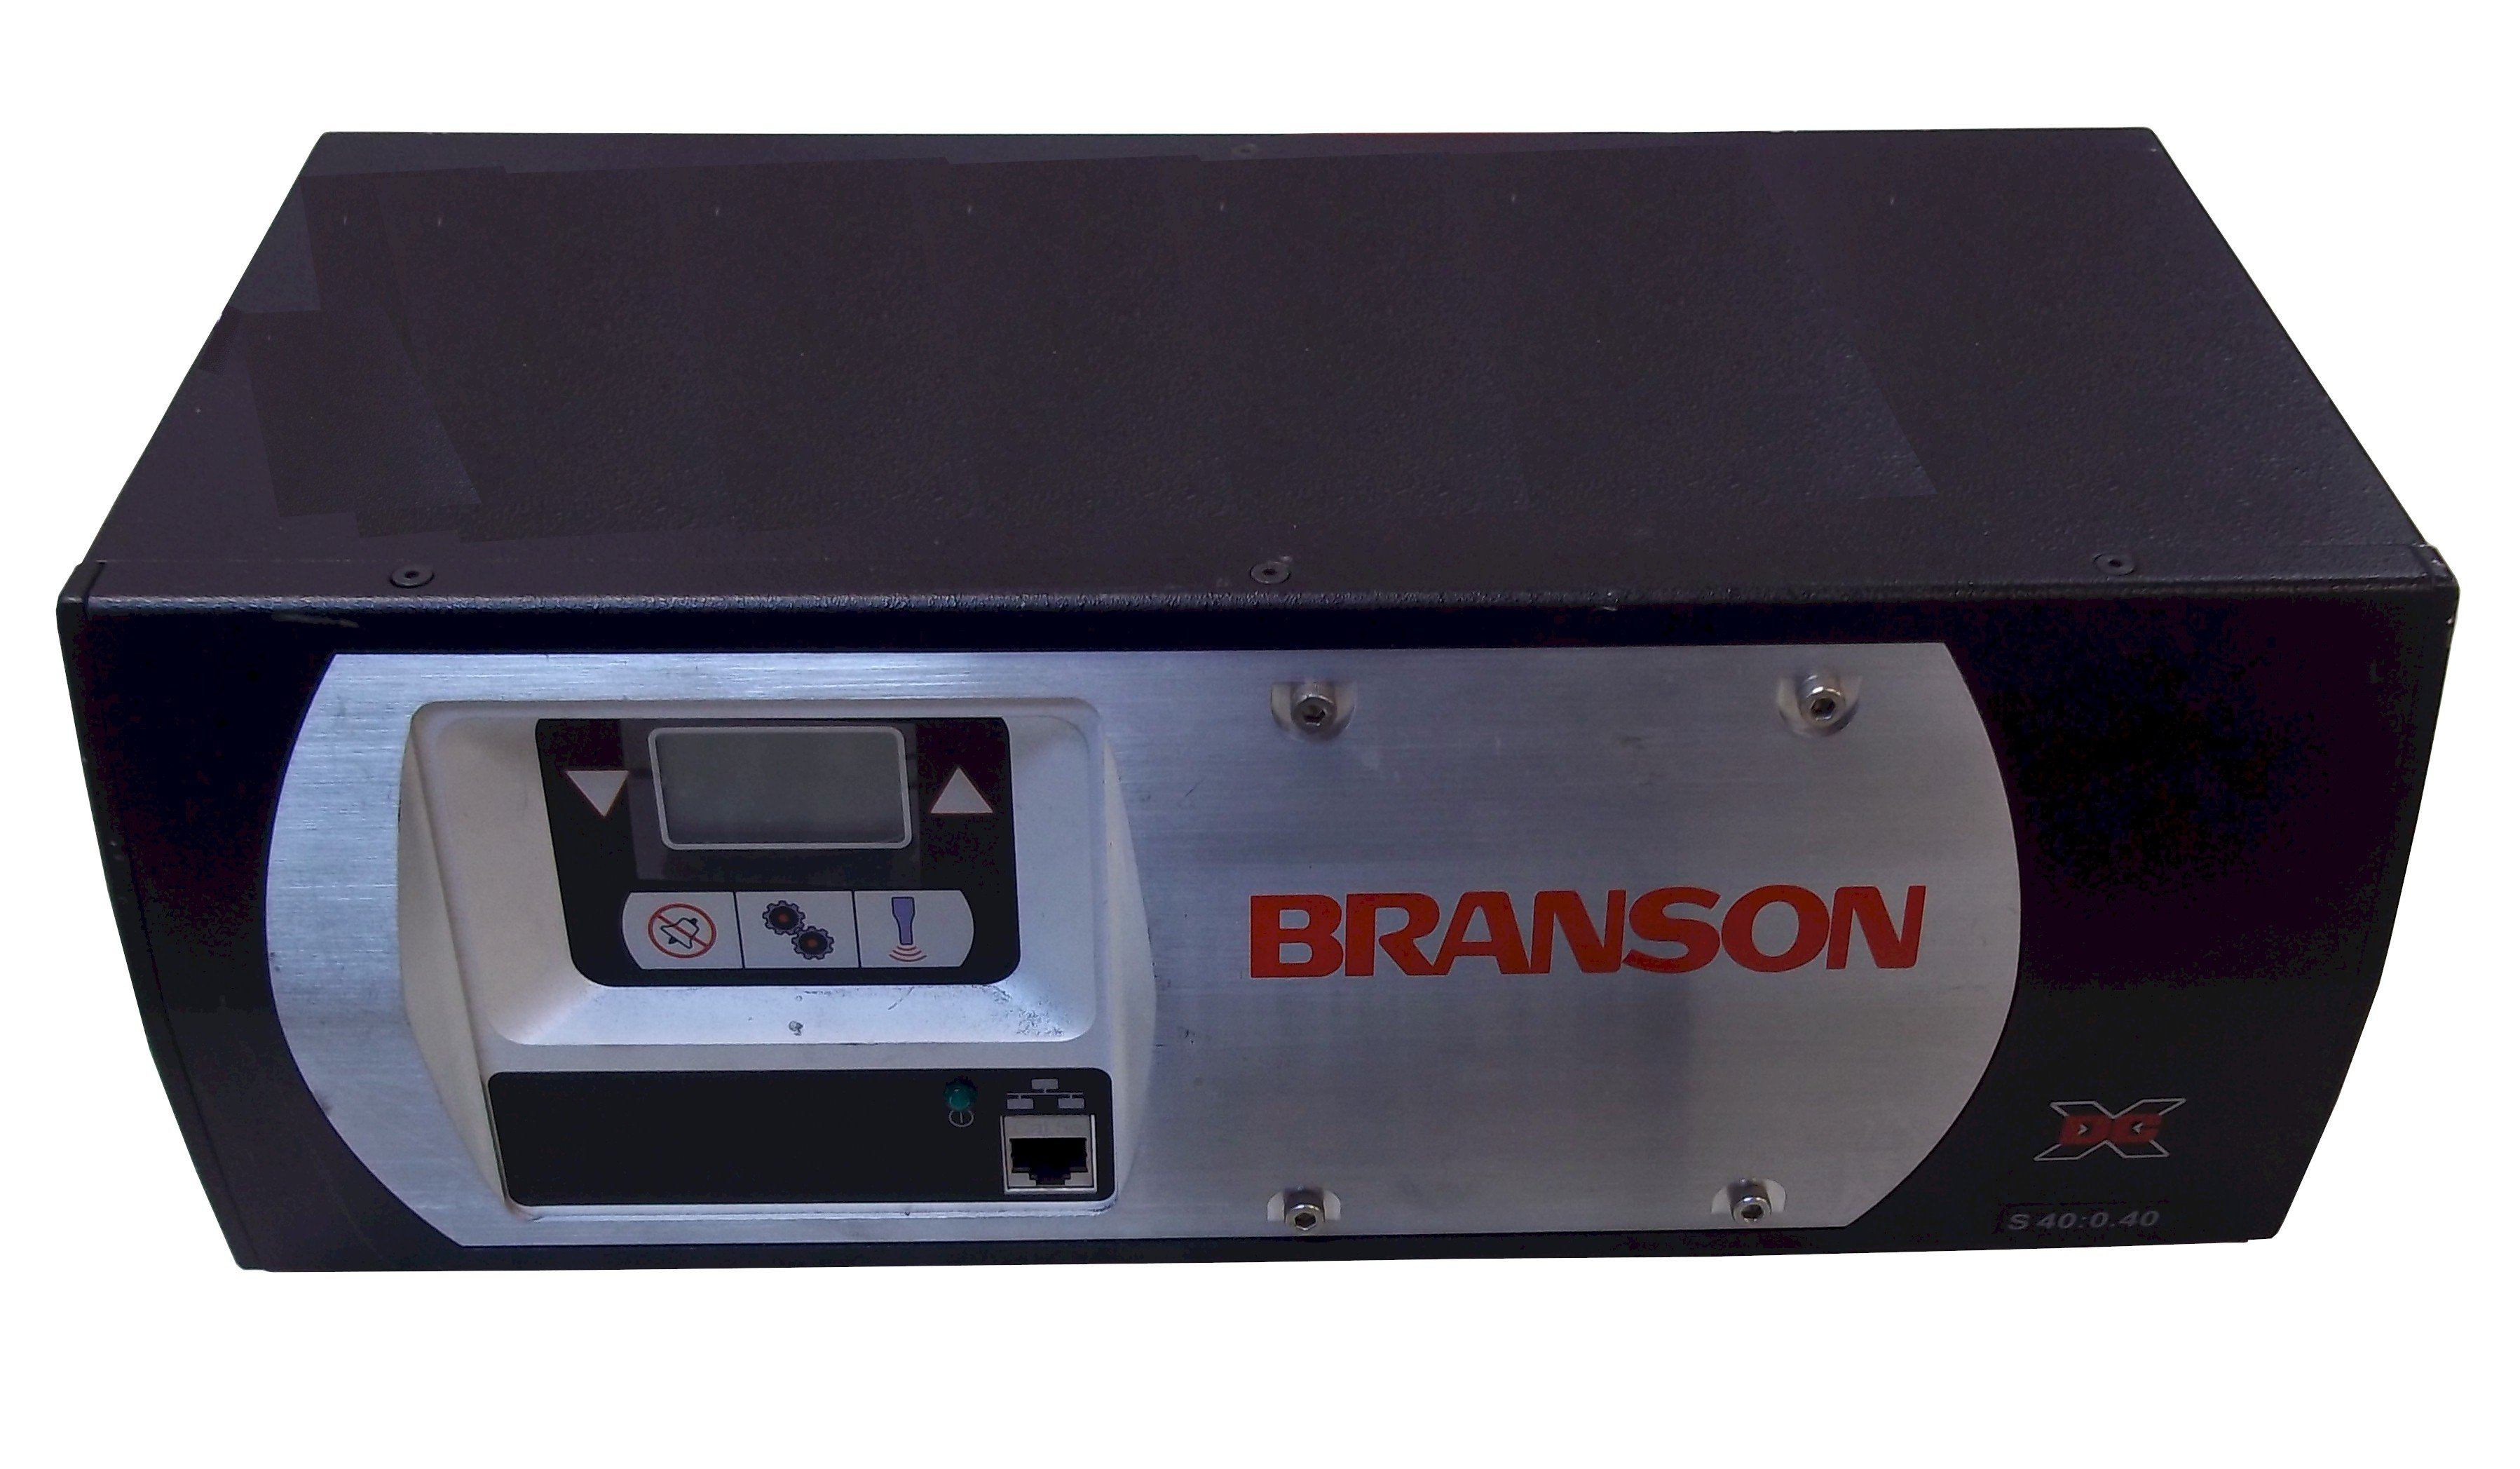 Branson 0.40DCXS40H0R Power Supply Repairs